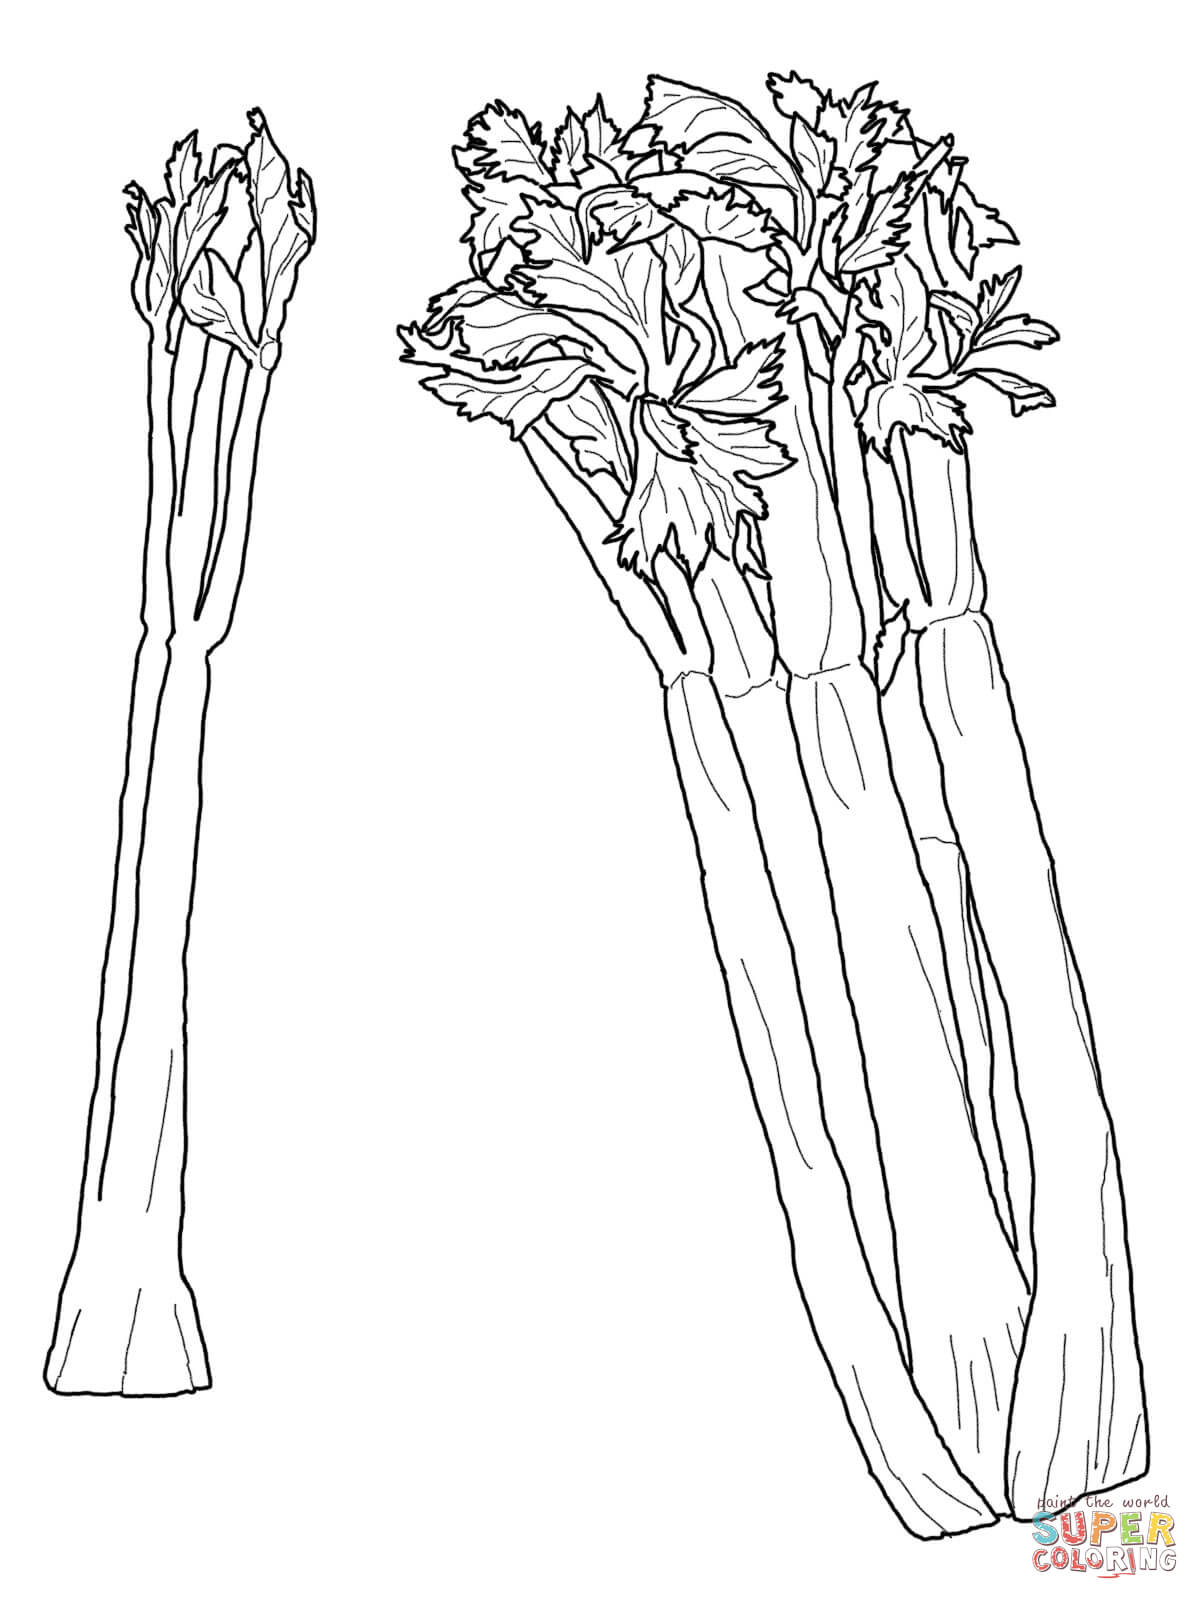 Celery clipart black and white. Coloring pages free